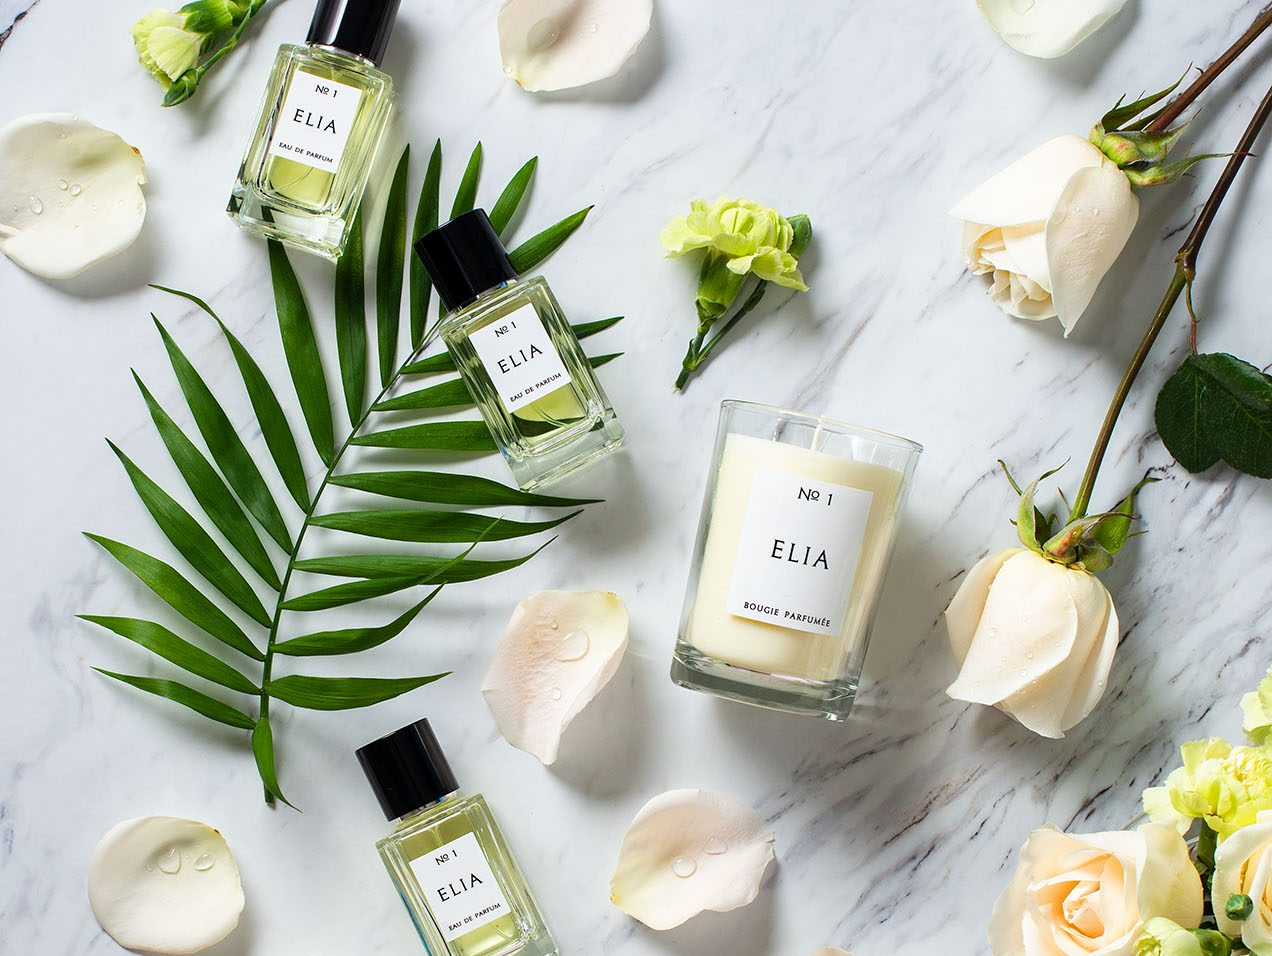 Newport Beach-Based Elia Parfum Donates Portion of Proceeds to Charity